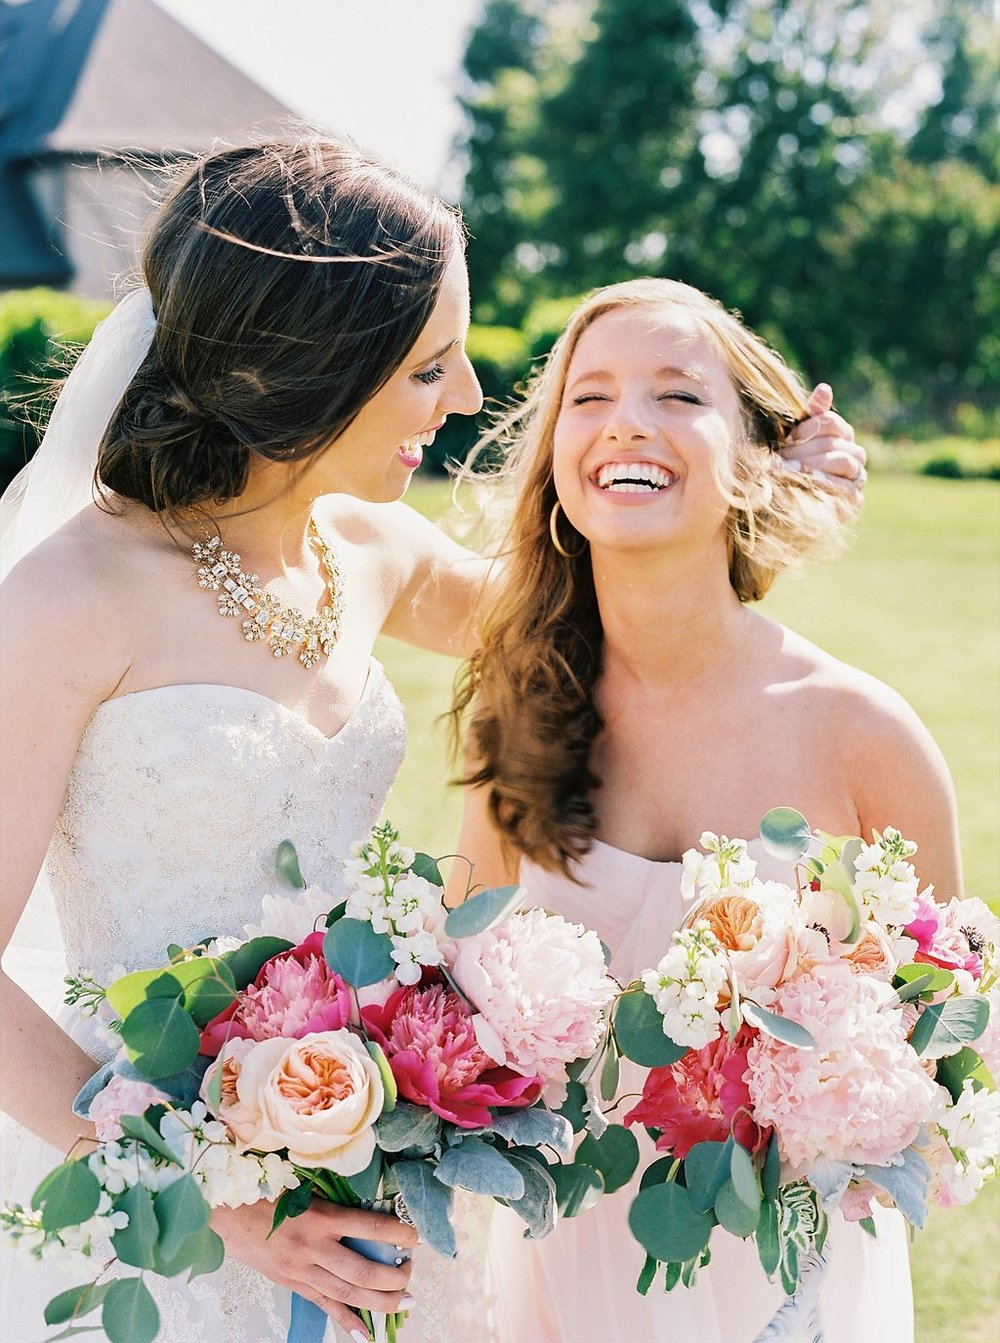 Sweet Bride and Maid of Honor Windblown Moment | Blush and Navy Wedding with Fuchsia, French Blue and Gold Accents | Simply Jessica Marie's Southern Wedding | Photo by Perry Vaile Photography